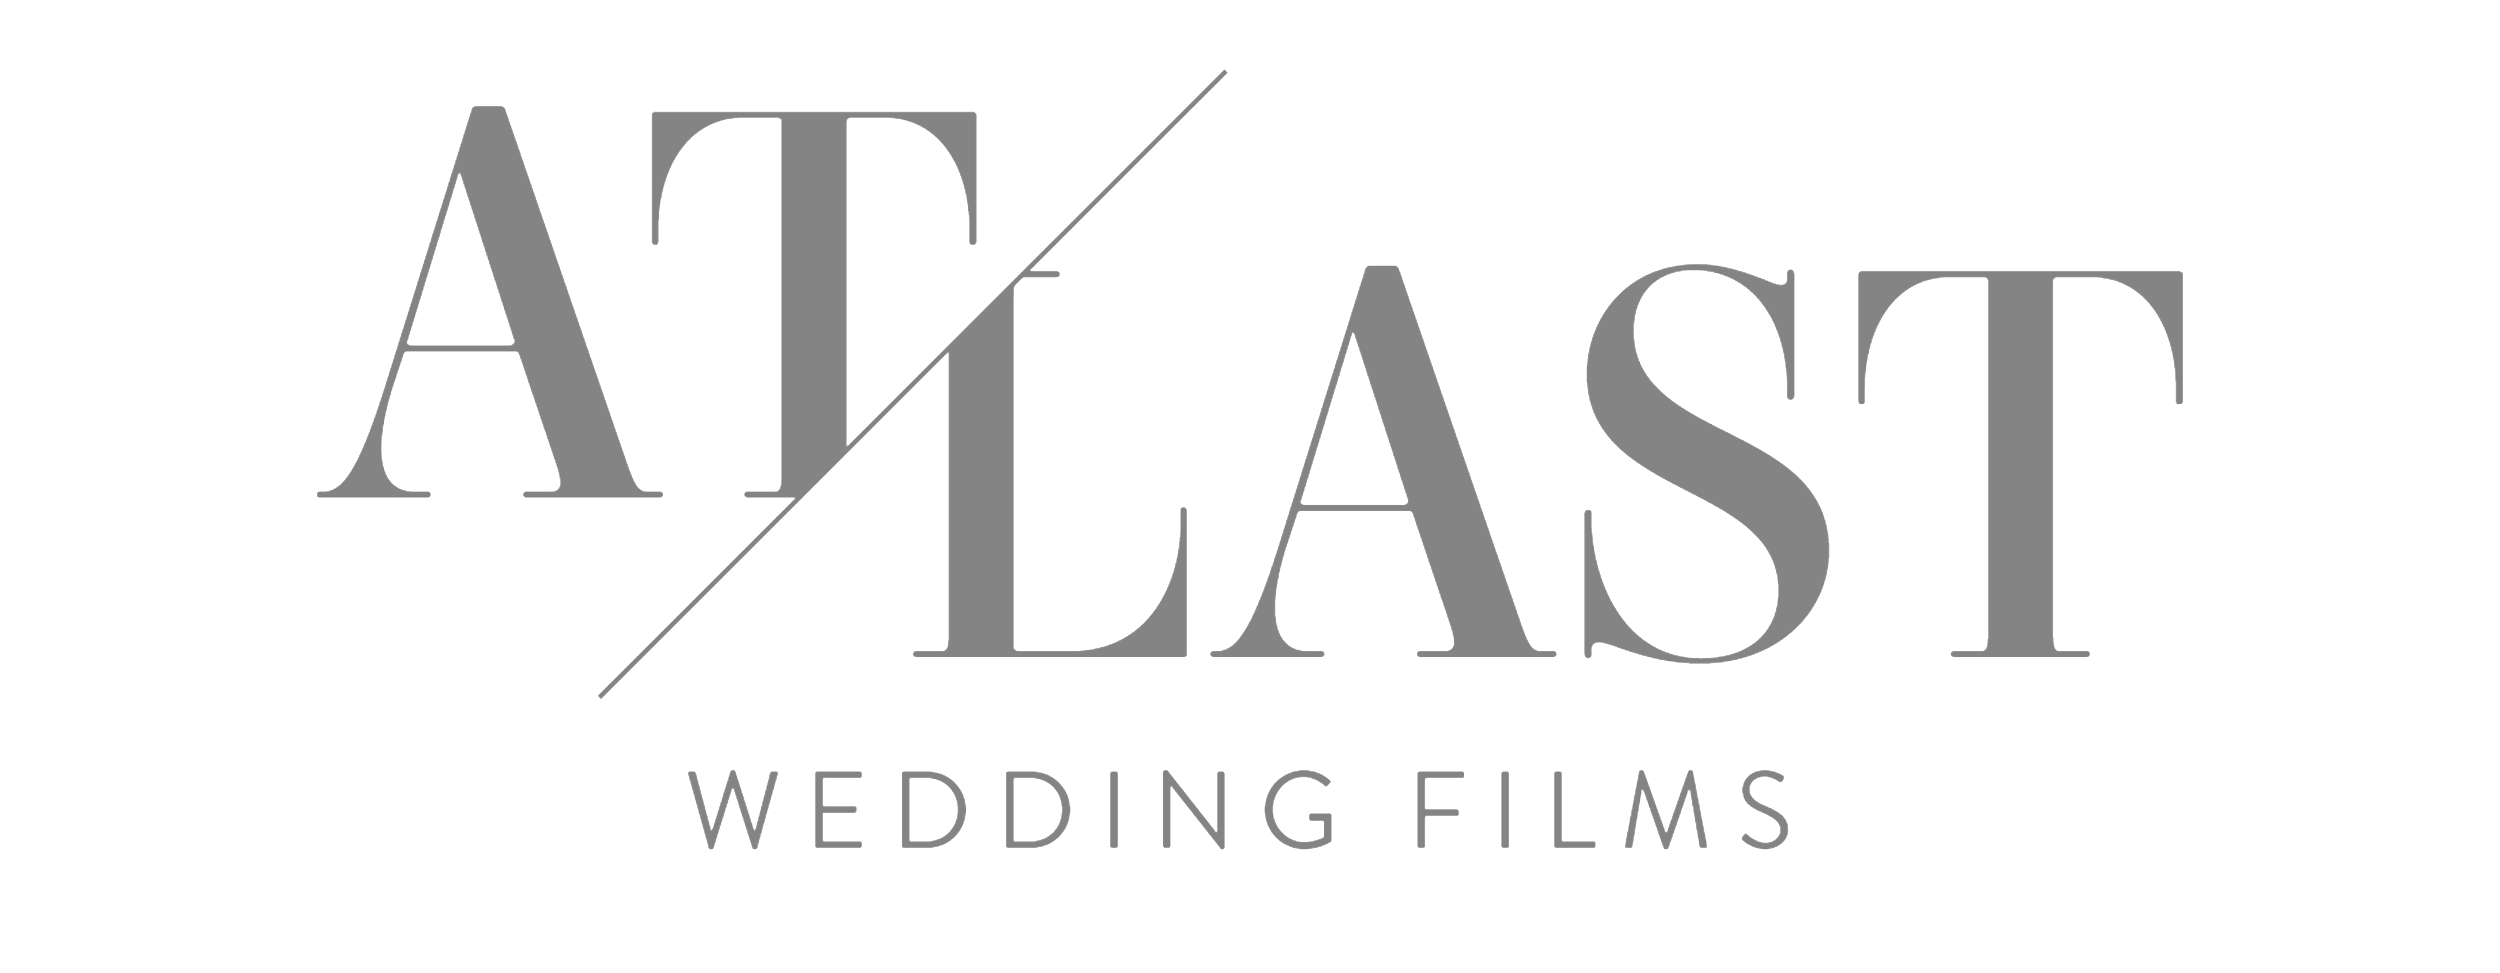 ATLASTweddingfilmsLOGO.png